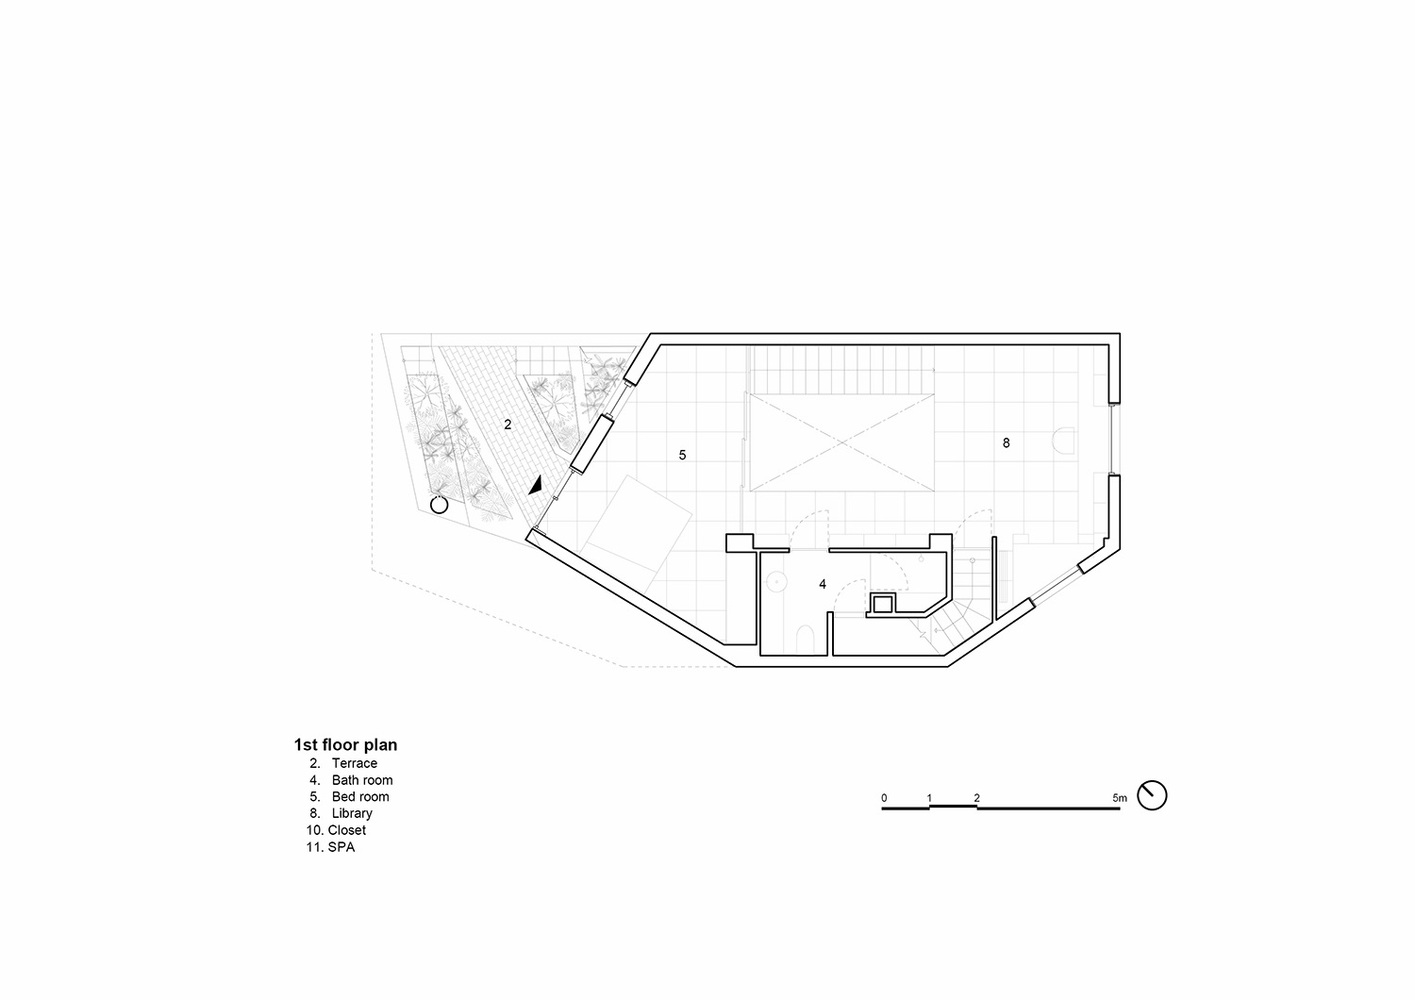 HH_DRAWING_2_1st_floor_plan